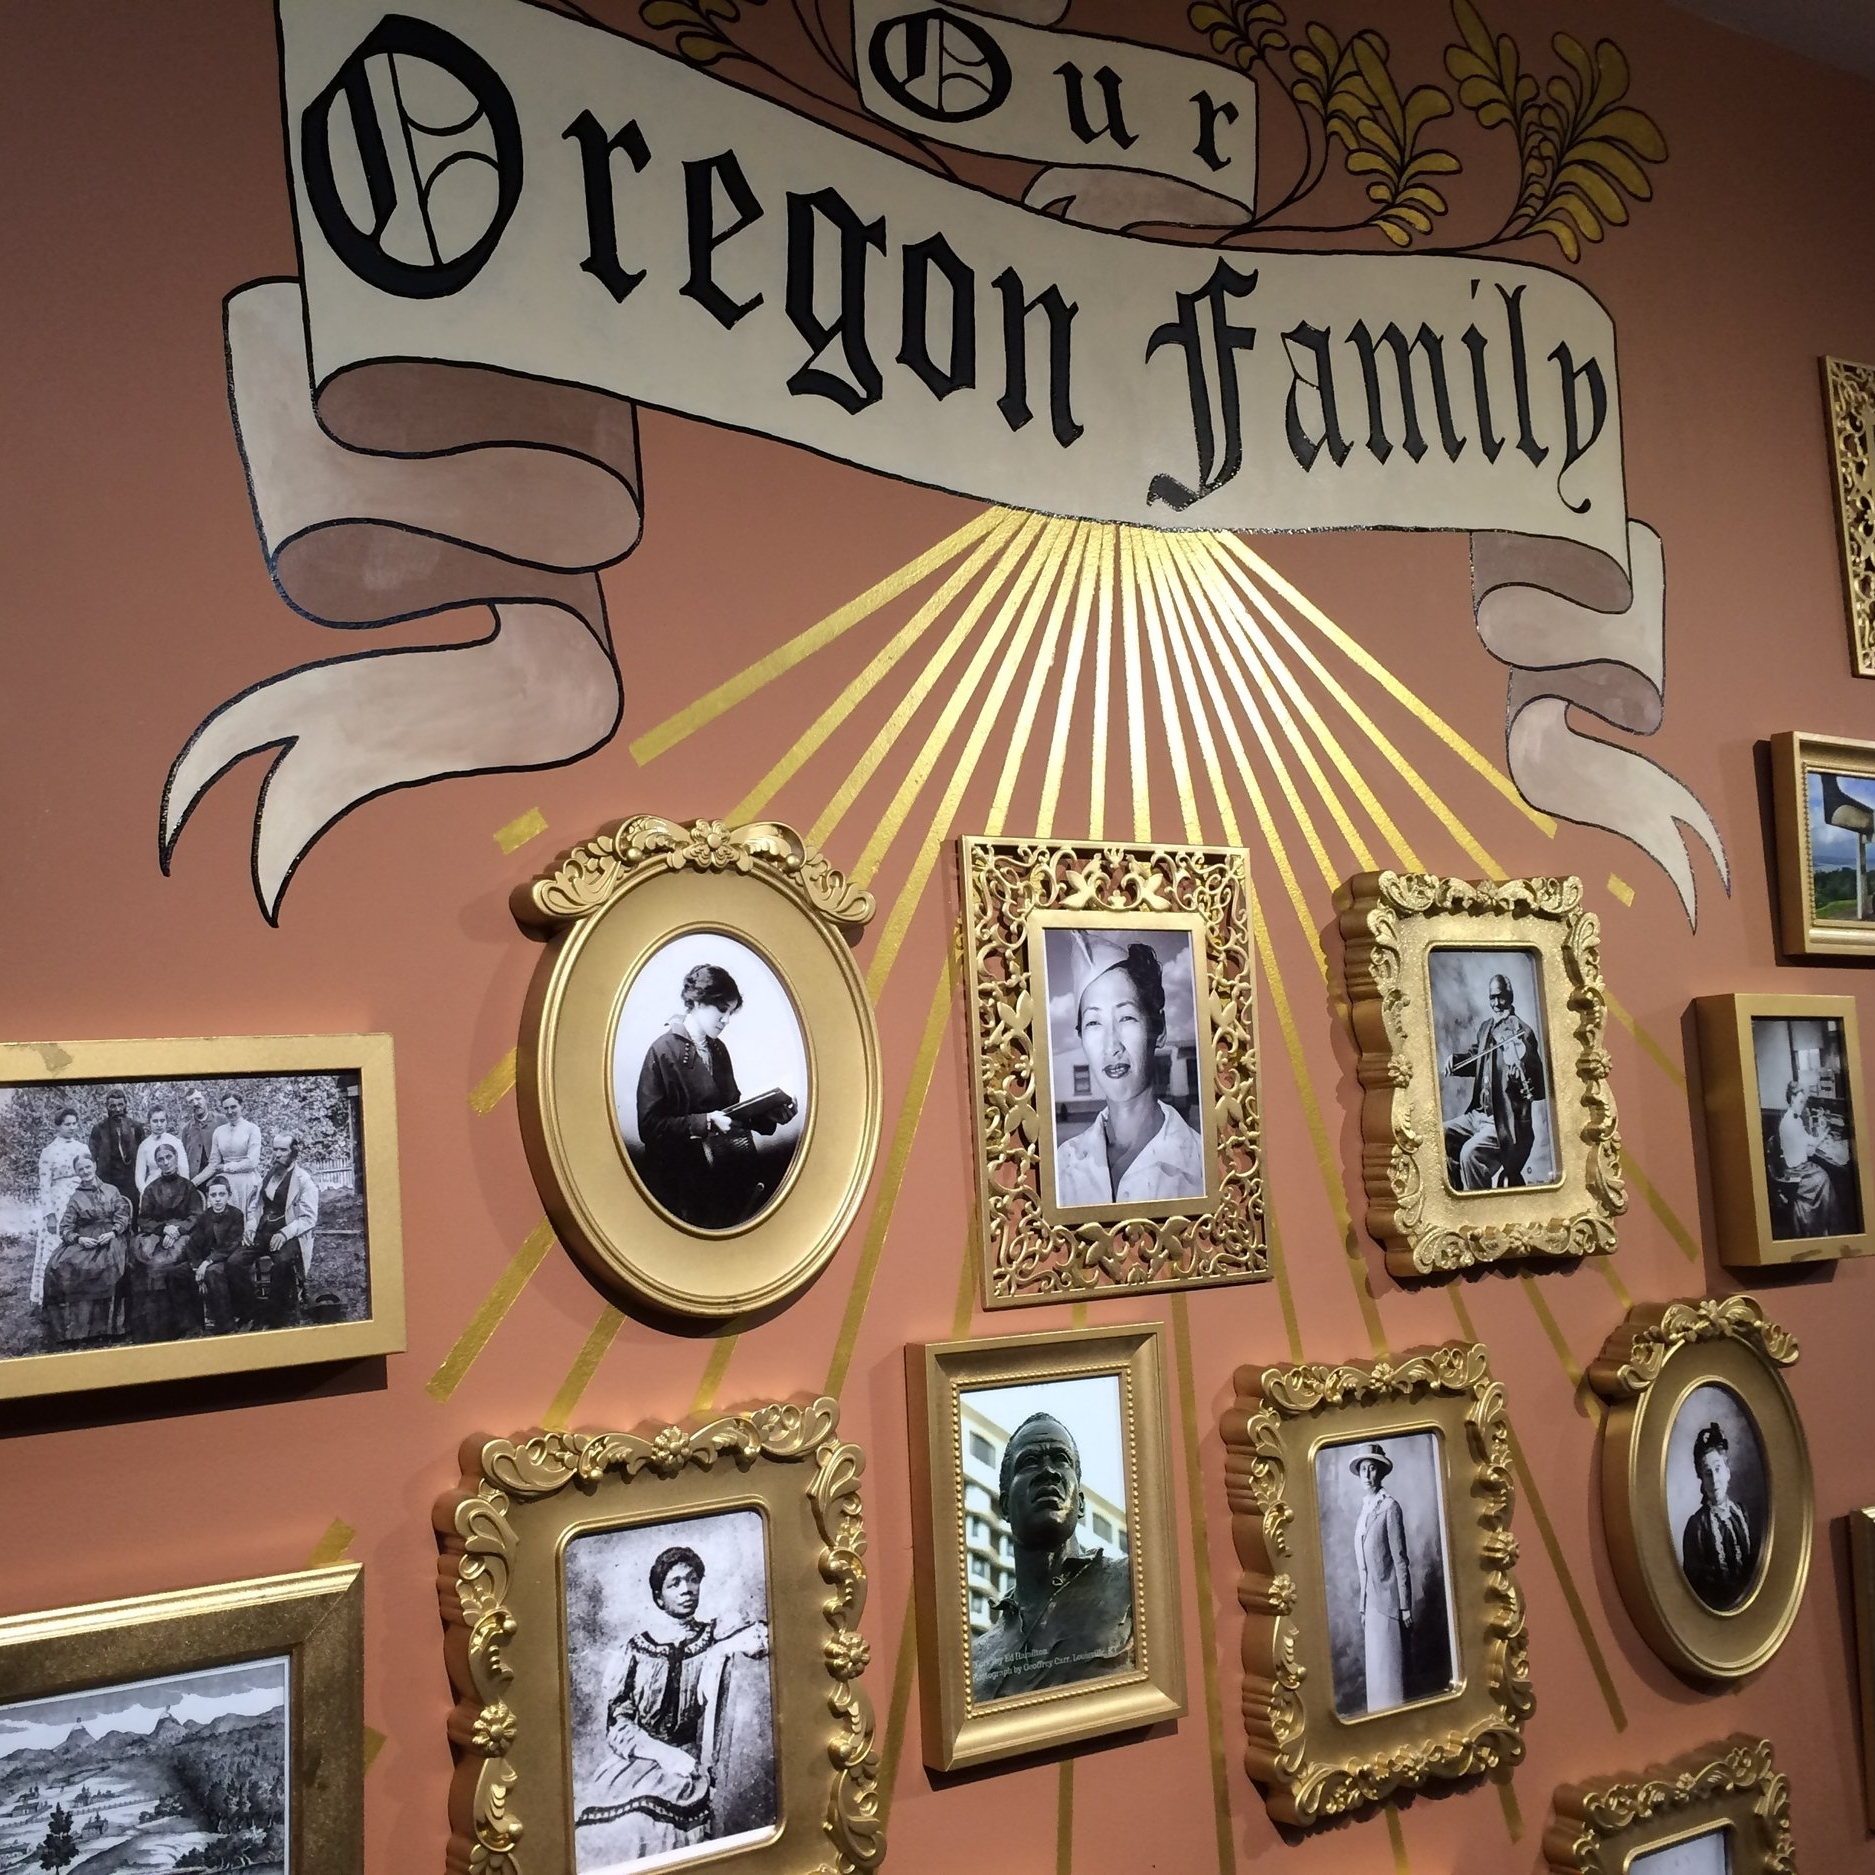 The history and diversity of our state's trailblazers is showcased through imagery and a timeline.